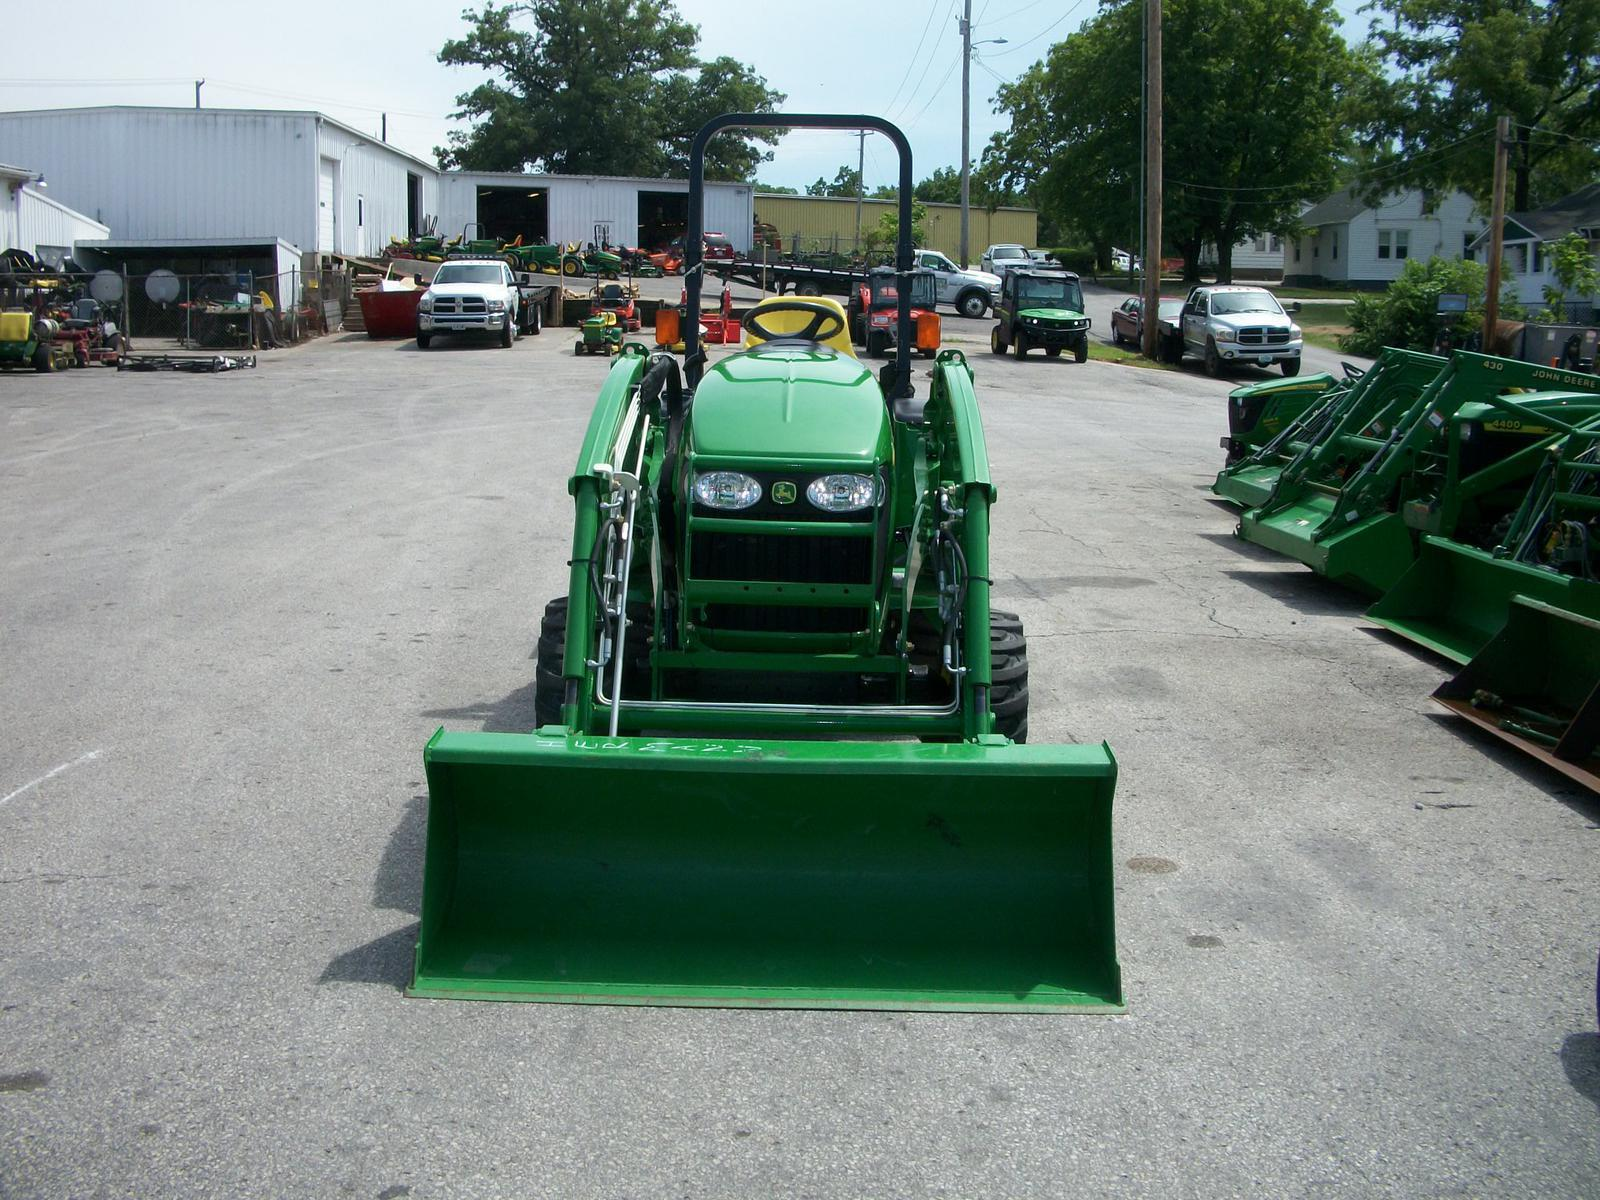 2012 John Deere 3000 Series 3520 Oos For Sale In Columbia Mo Farm Ignition Switch Wiring Diagram Power Lawn Leisure 573 442 1139